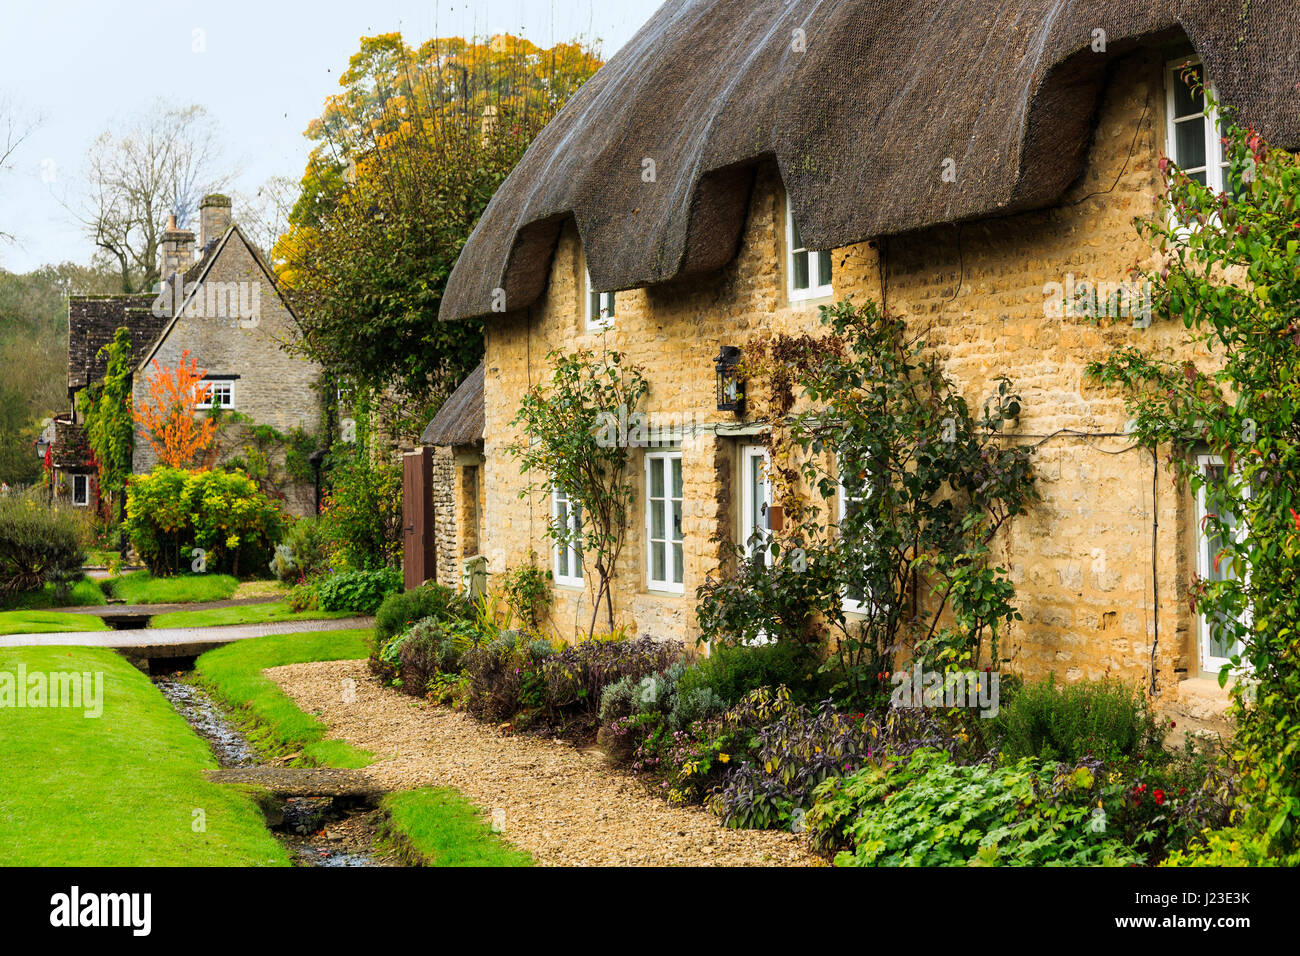 Minster Lovell village houses cottages in the Cotswolds, England, UK - Stock Image